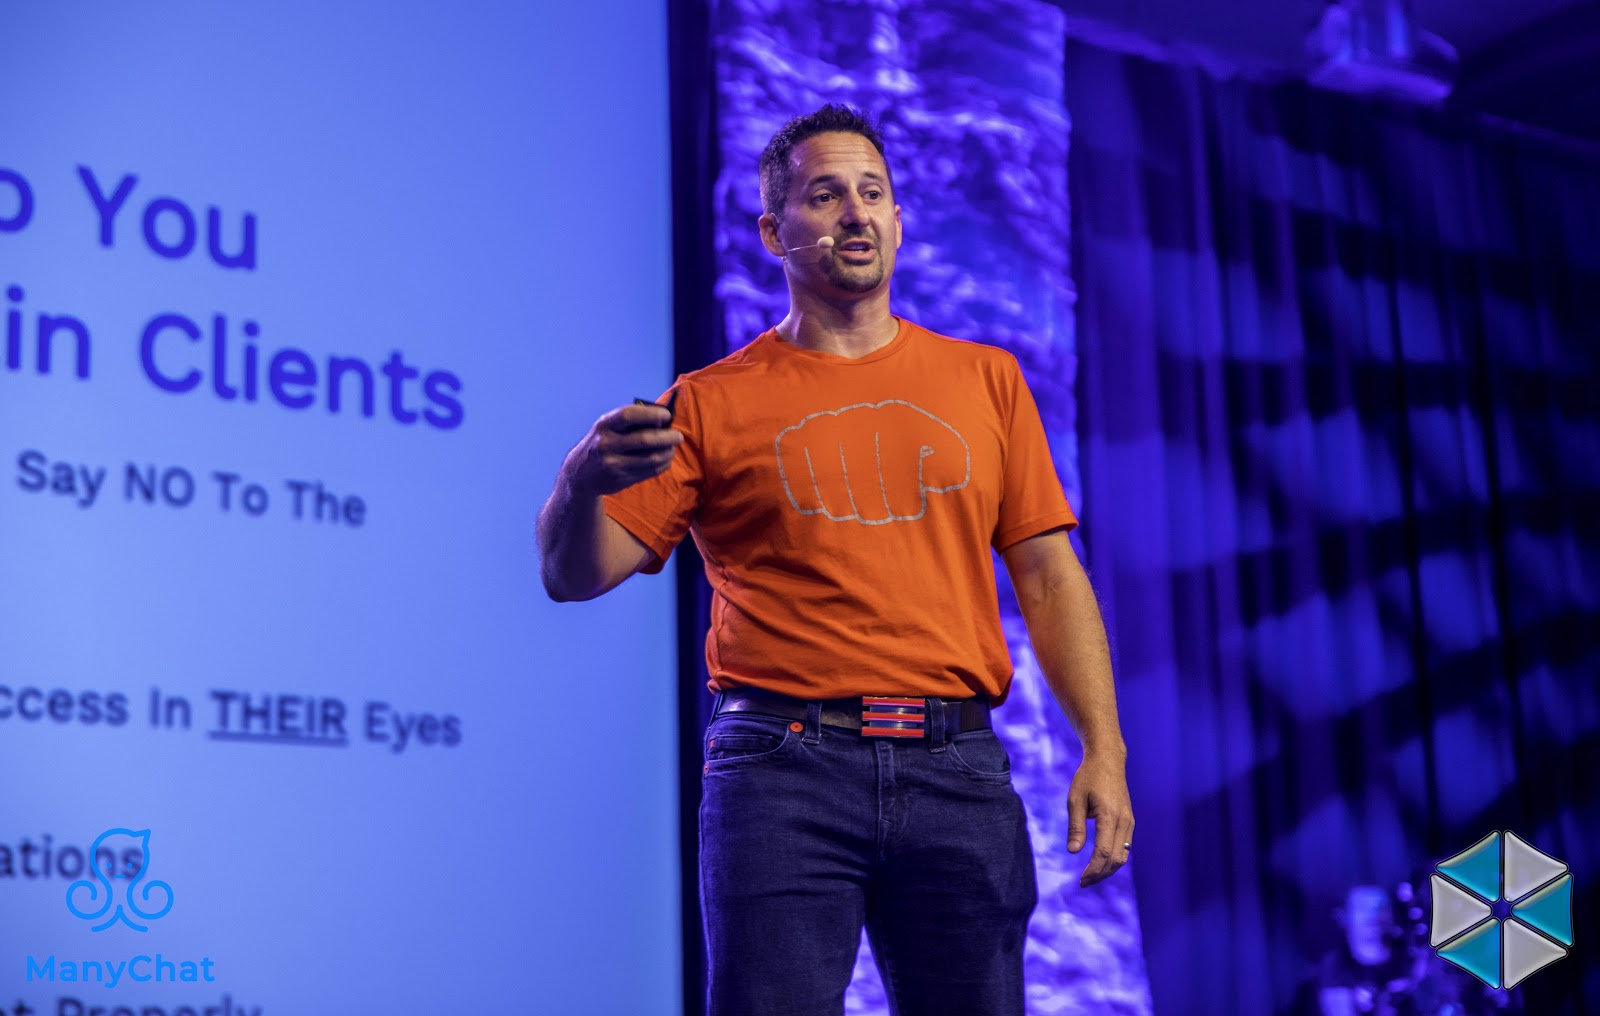 Matt Plapp Speaking at Conversations | Conversations 2019: Everything You Need To Know About Agency Day